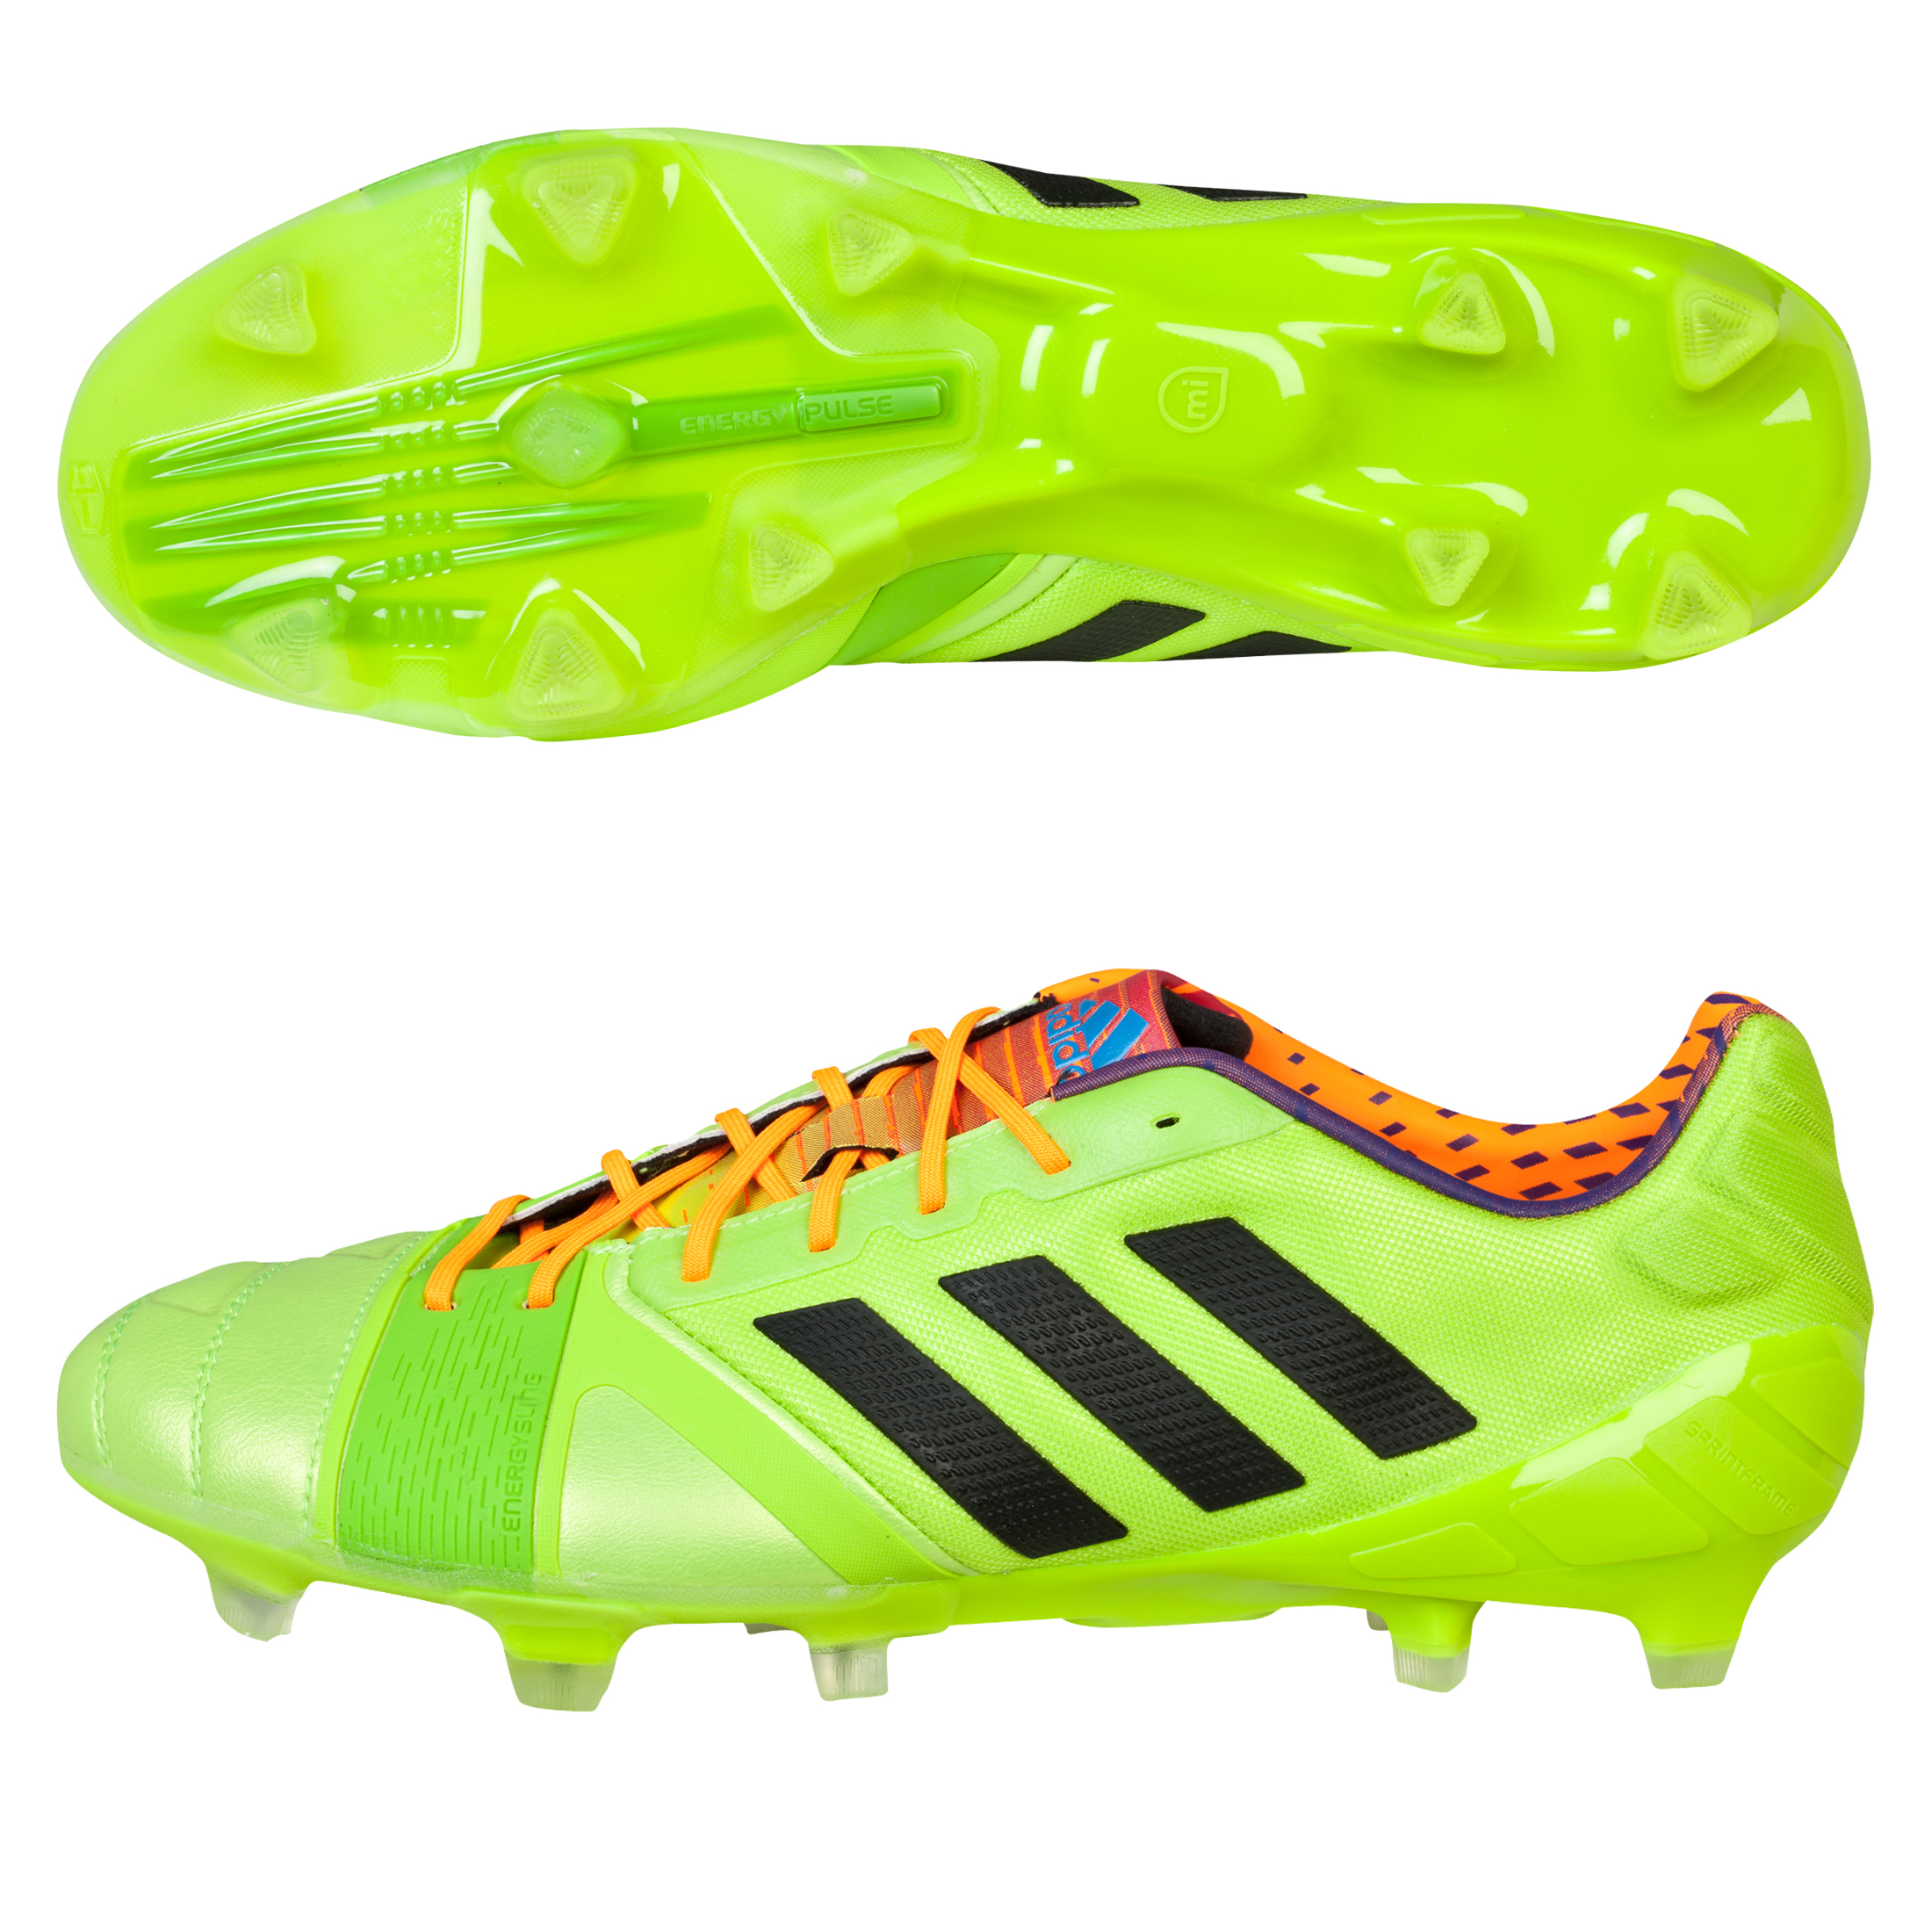 adidas Nitrocharge 1.0 TRX Firm Ground Football Boots Green